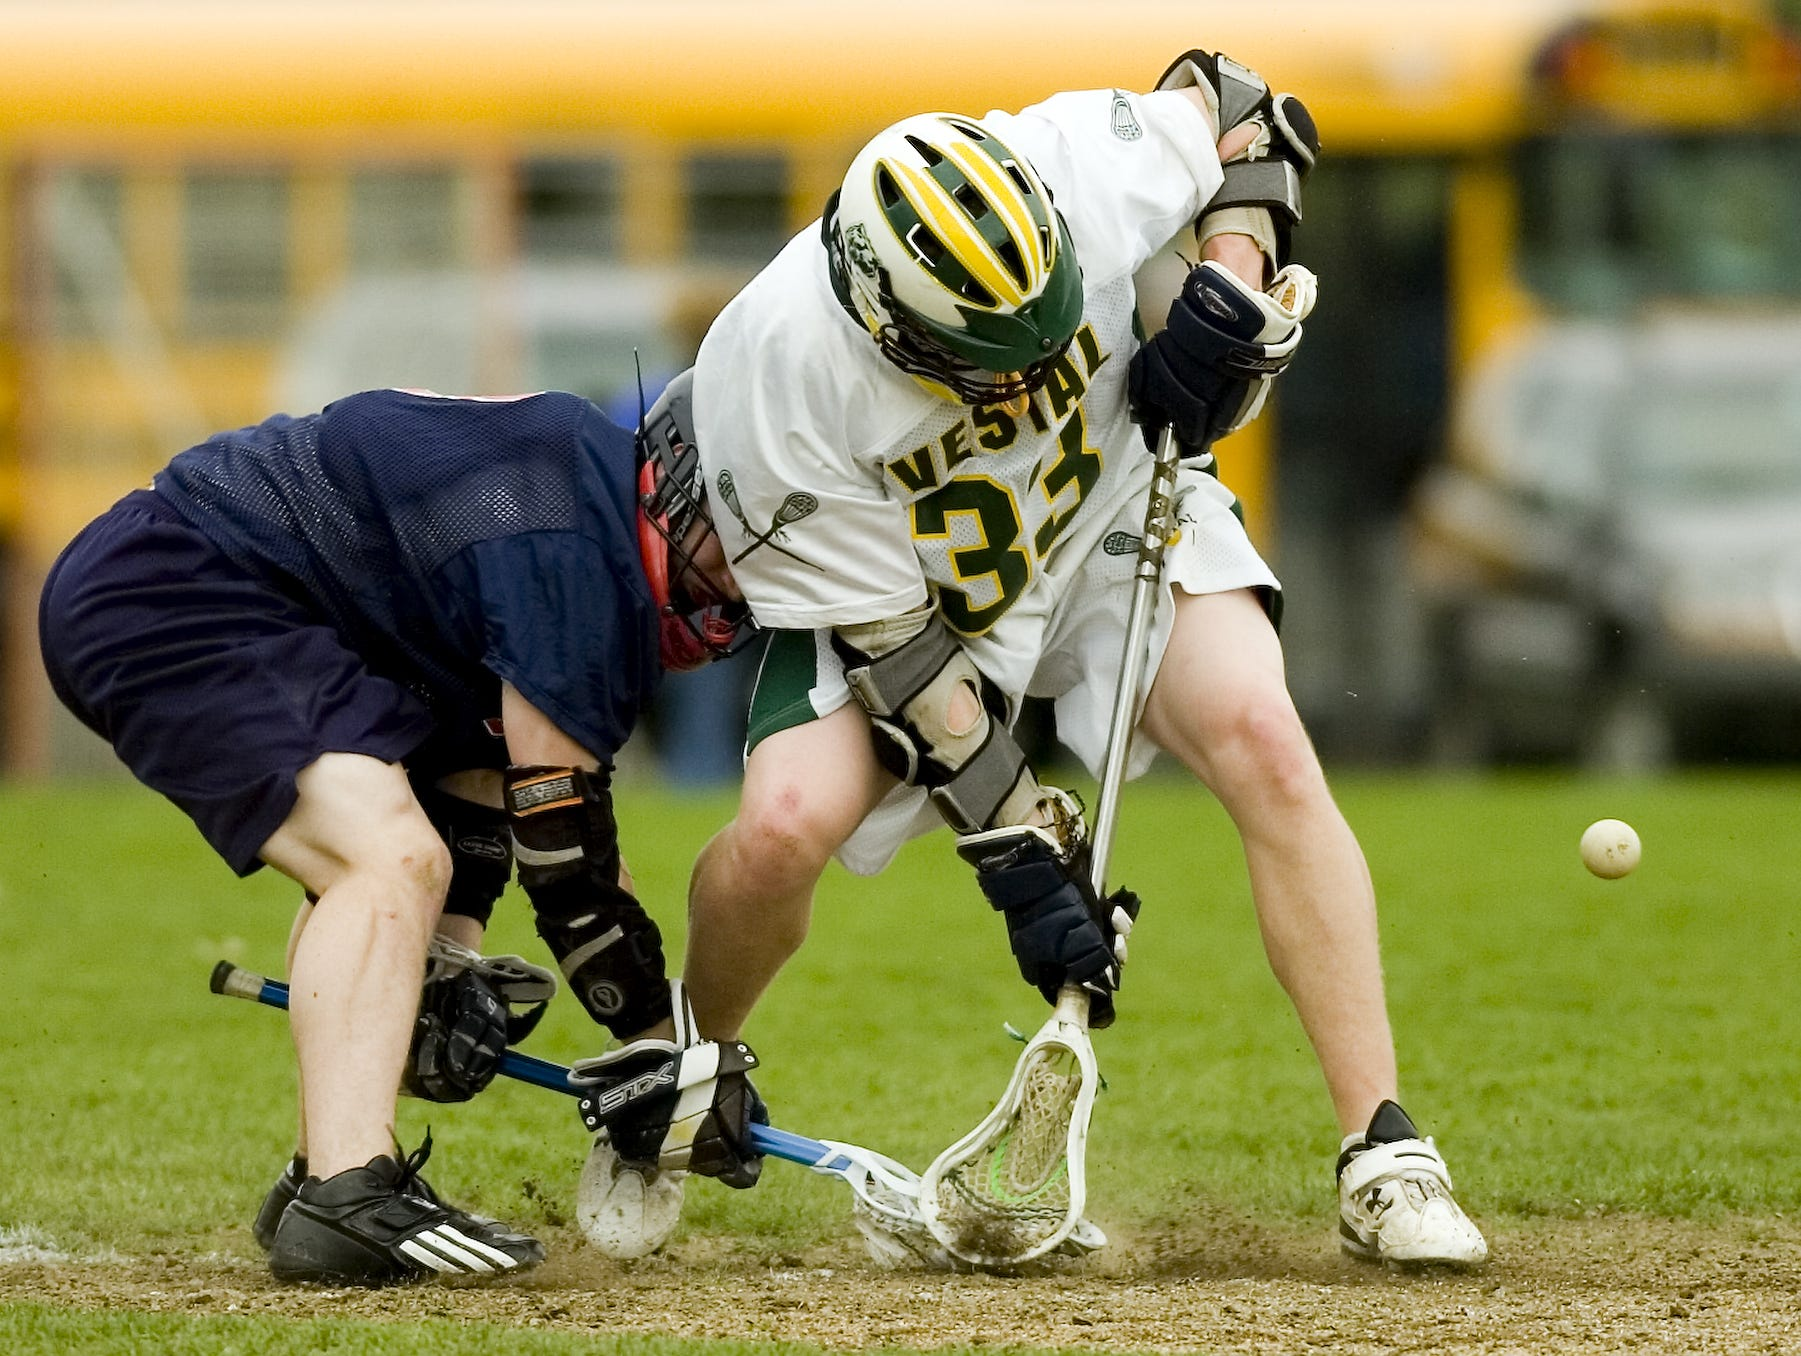 2007: Vestal High School's Chris Cook, right, and Binghamton High School's Casey Berry enter the second period of play during the Tuesday lacrosse game in Vestal.